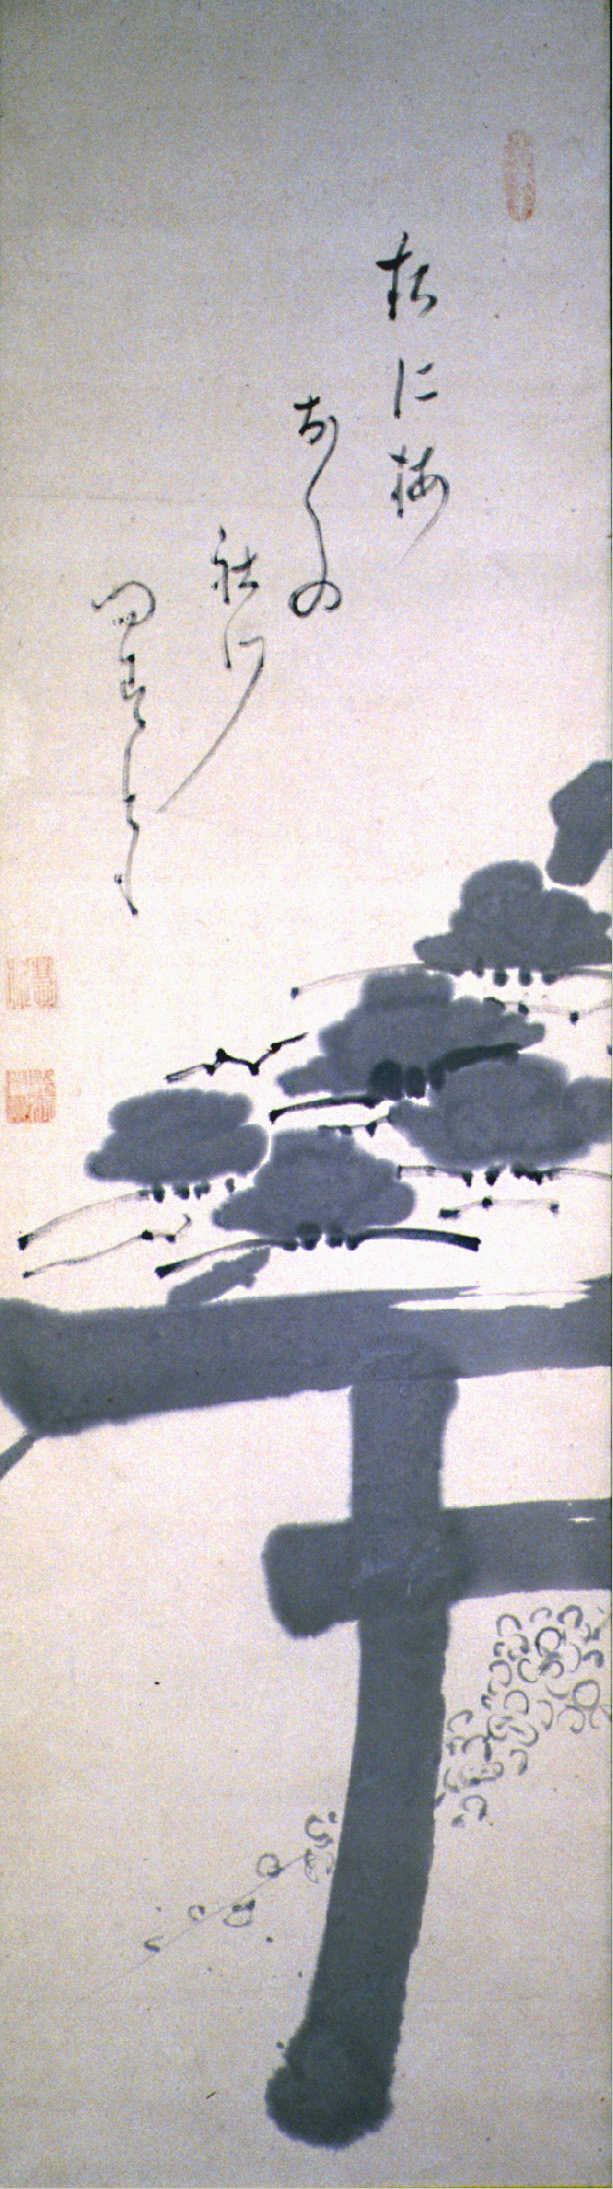 Japanese Shrine in pen and ink with clouds